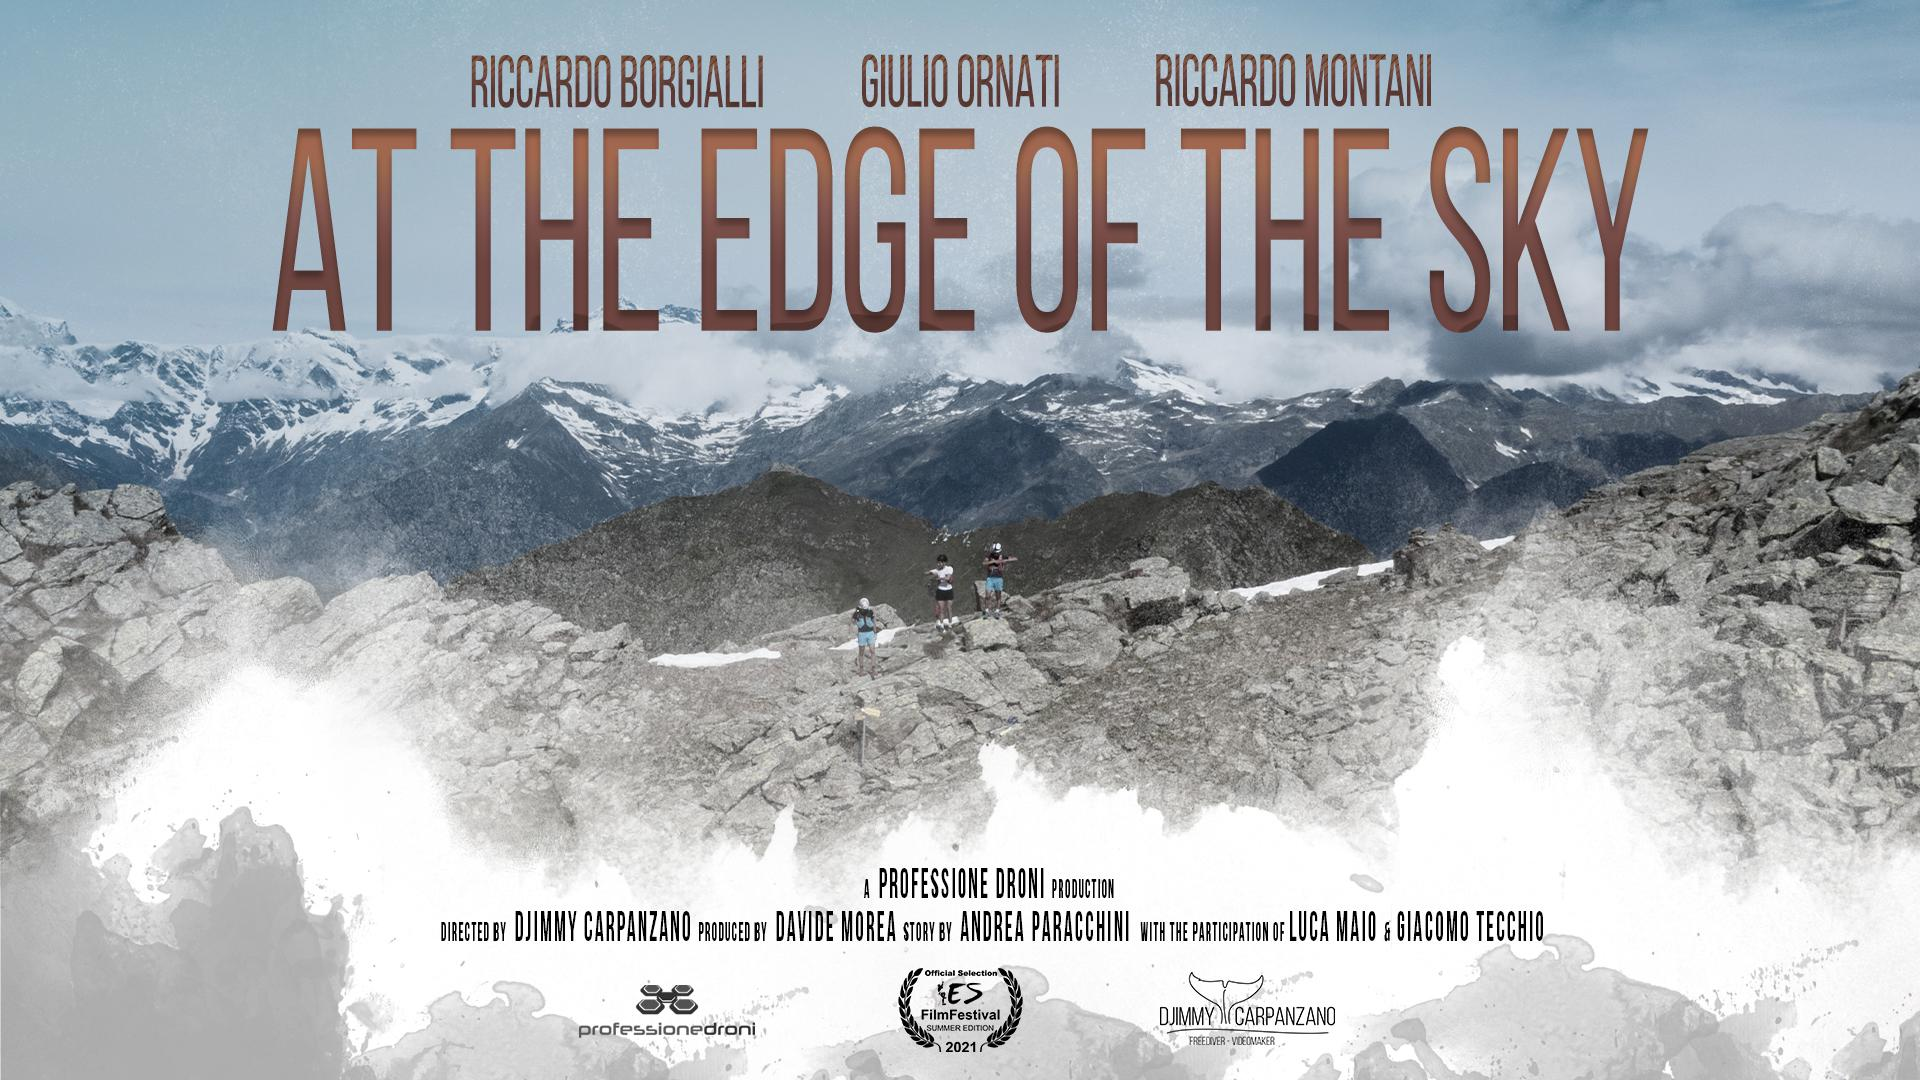 At the edge of the sky